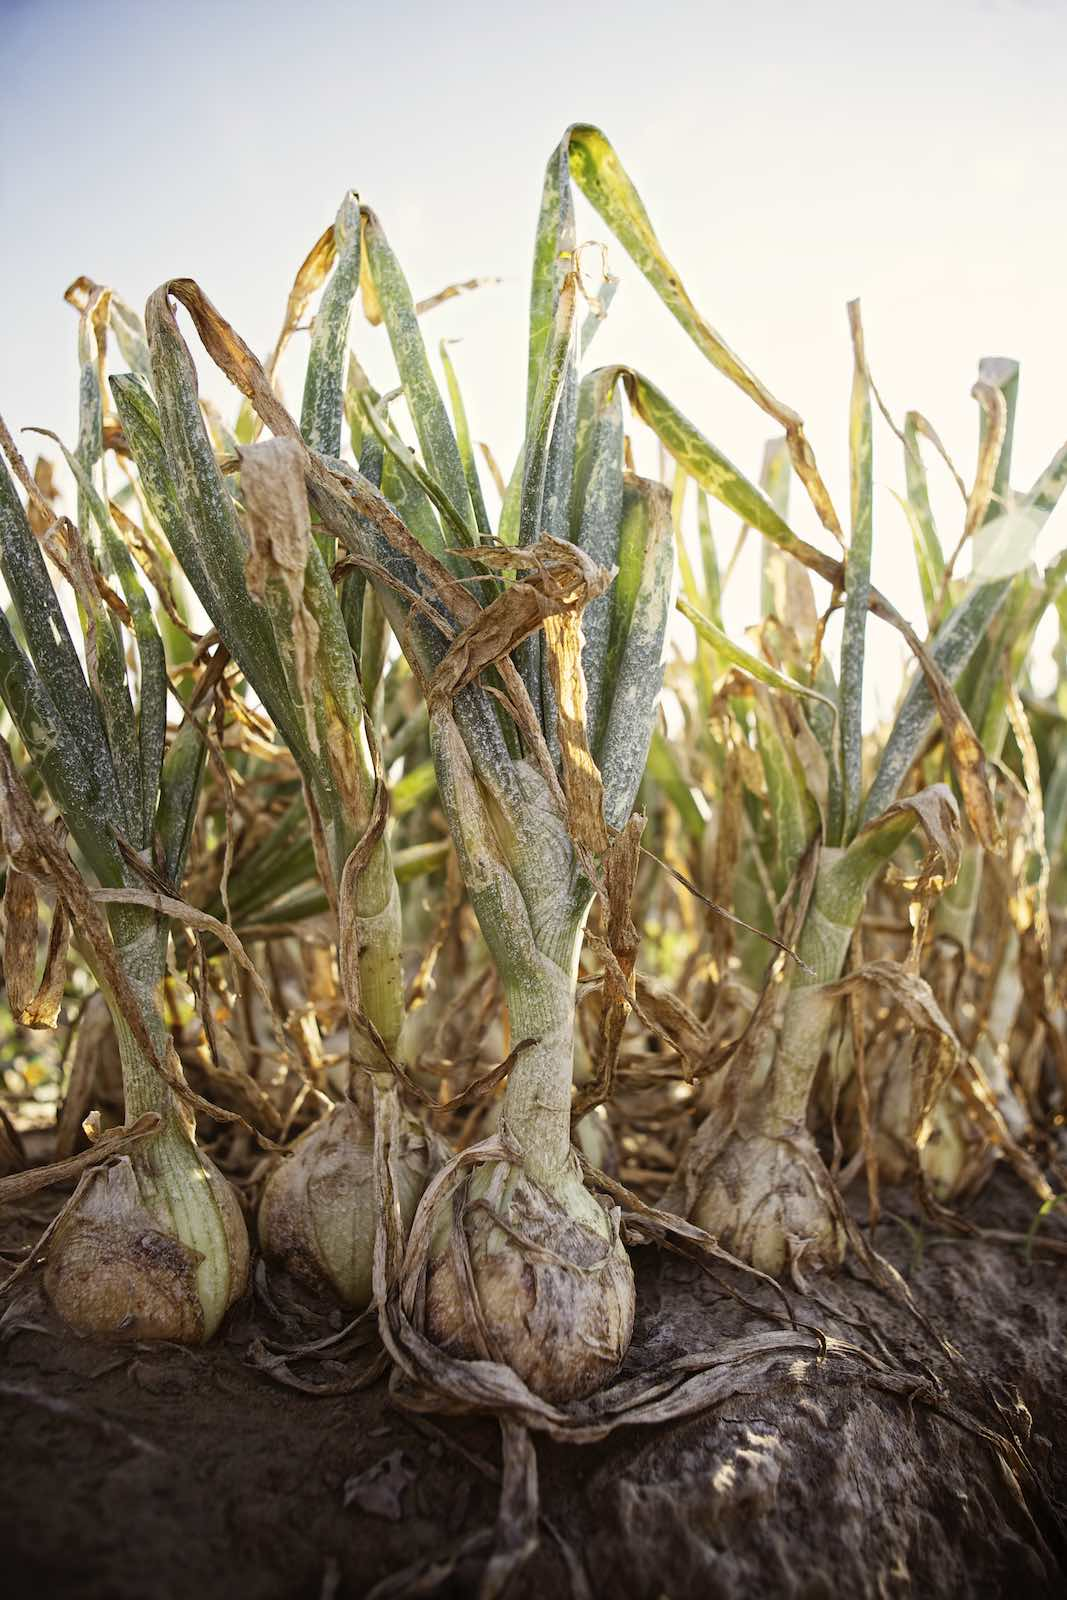 Onions growing in soil, ready to harvest.